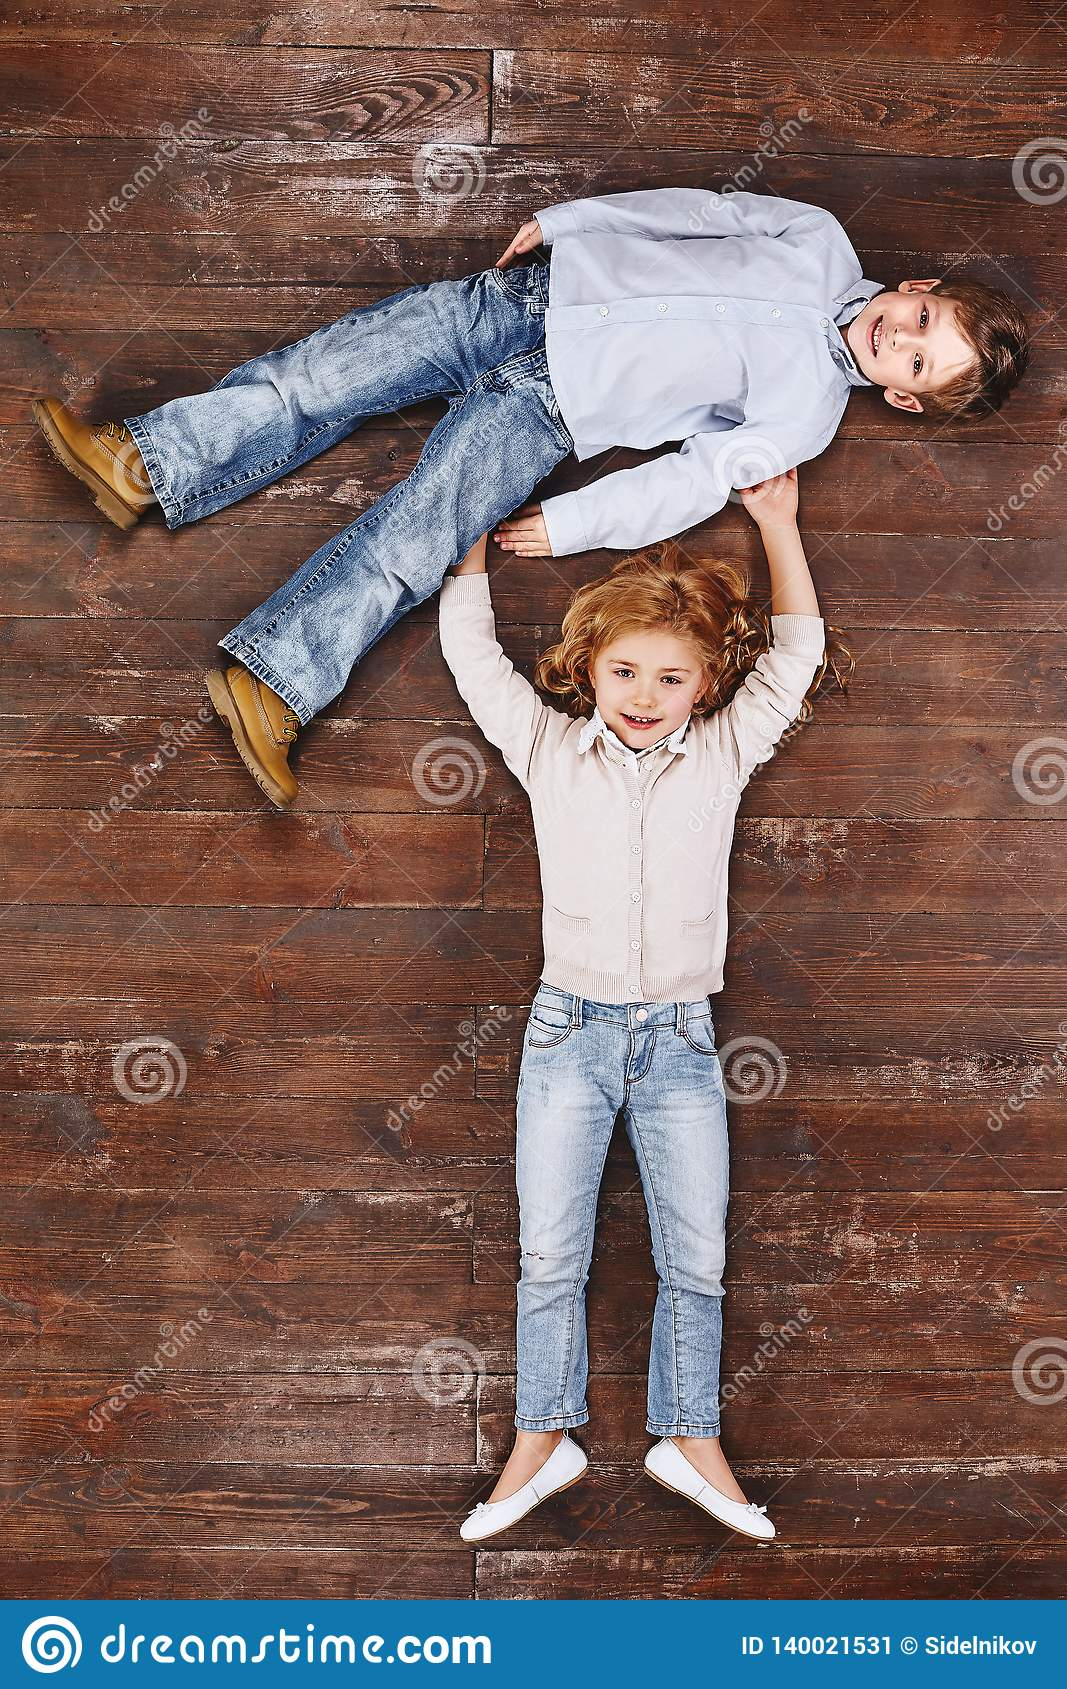 The only way to have a friend is to be one. Girl holding boy, looking at camera and smiling